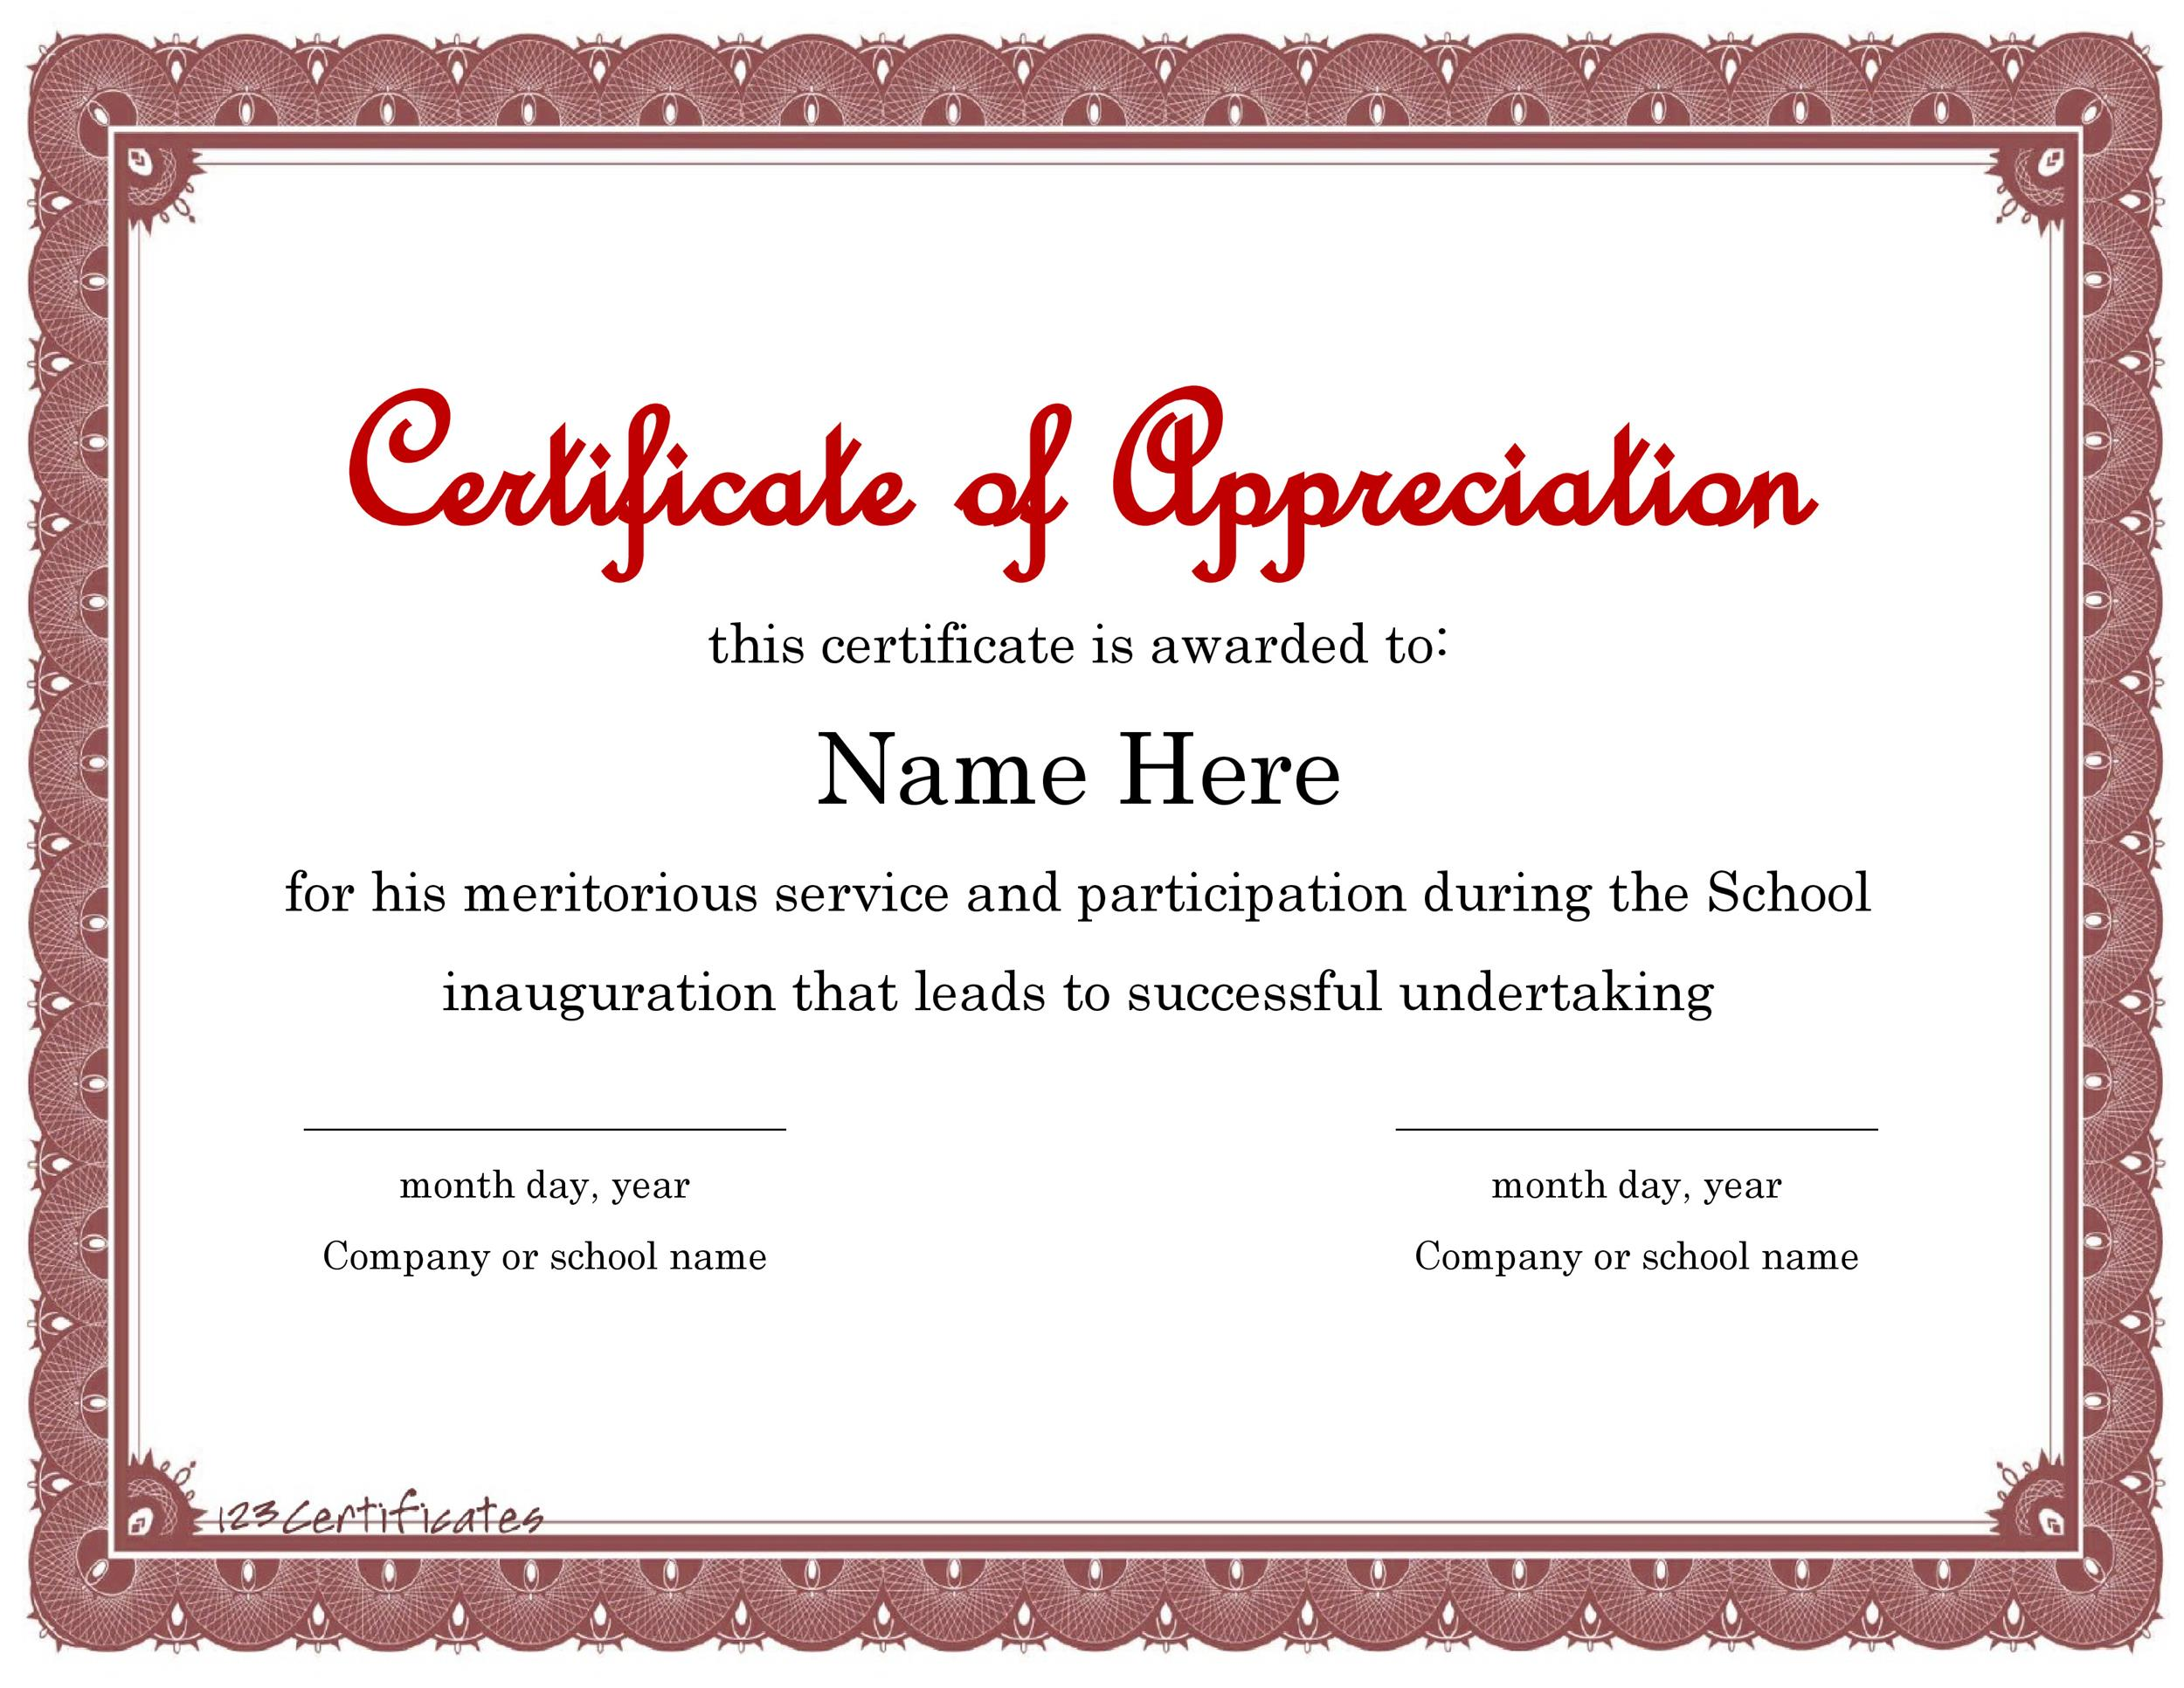 30 free certificate of appreciation templates and letters printable certificate of appreciation 01 yelopaper Images